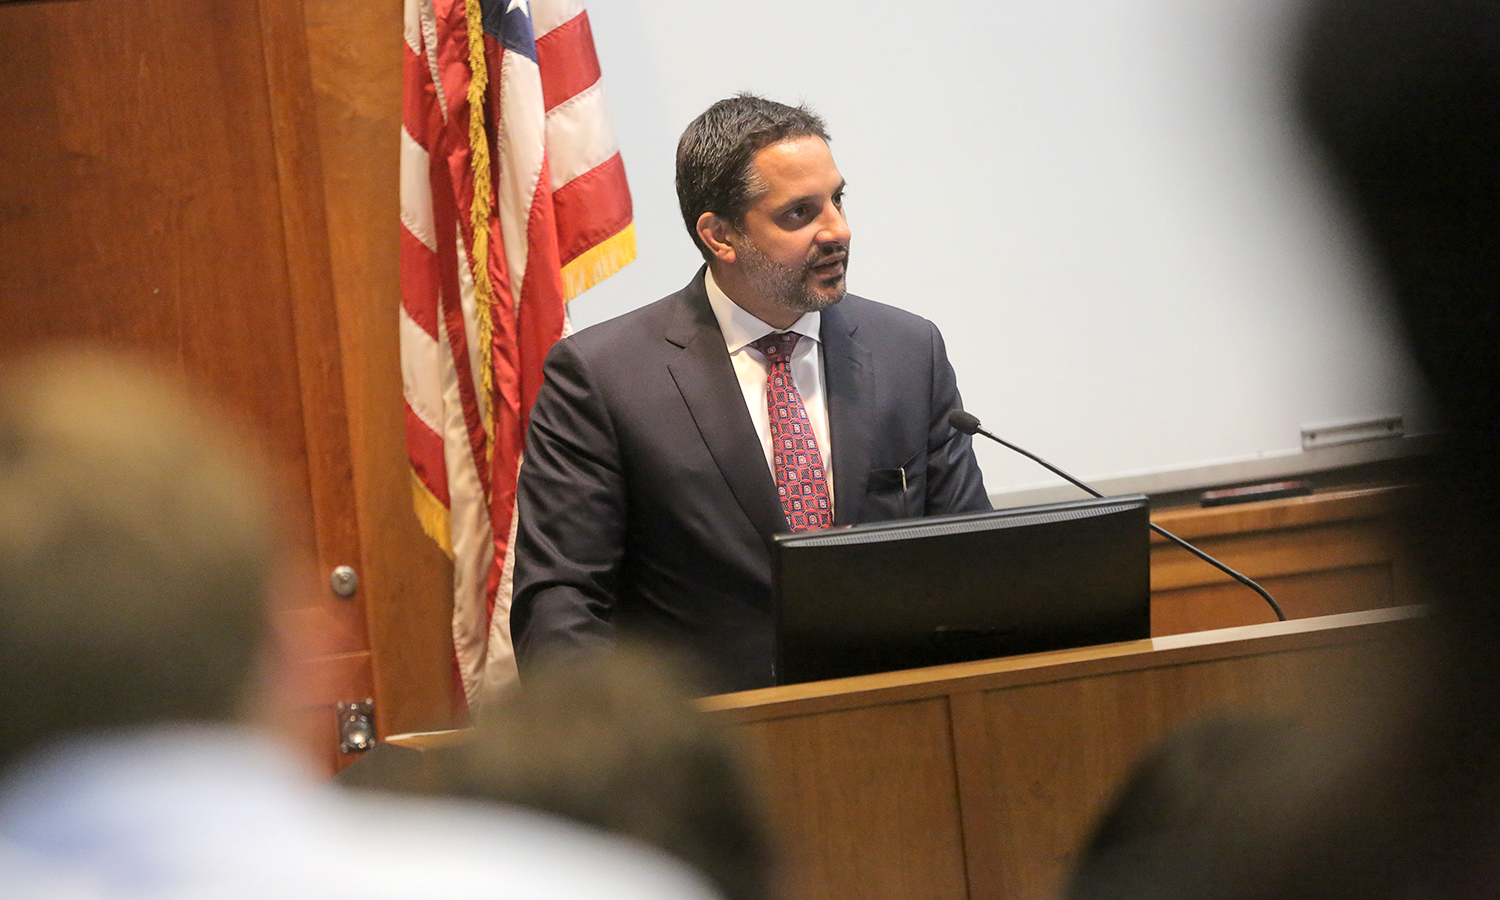 "Dr. Eduardo M. Peñalver, the Allan R. Tessler Dean and Professor of Law at Cornell University, delivers his talk titled ""Varieties of Diversity in Constitutional Lawmaking"" in the Sandford Room of Warren Hunting Smith Library."